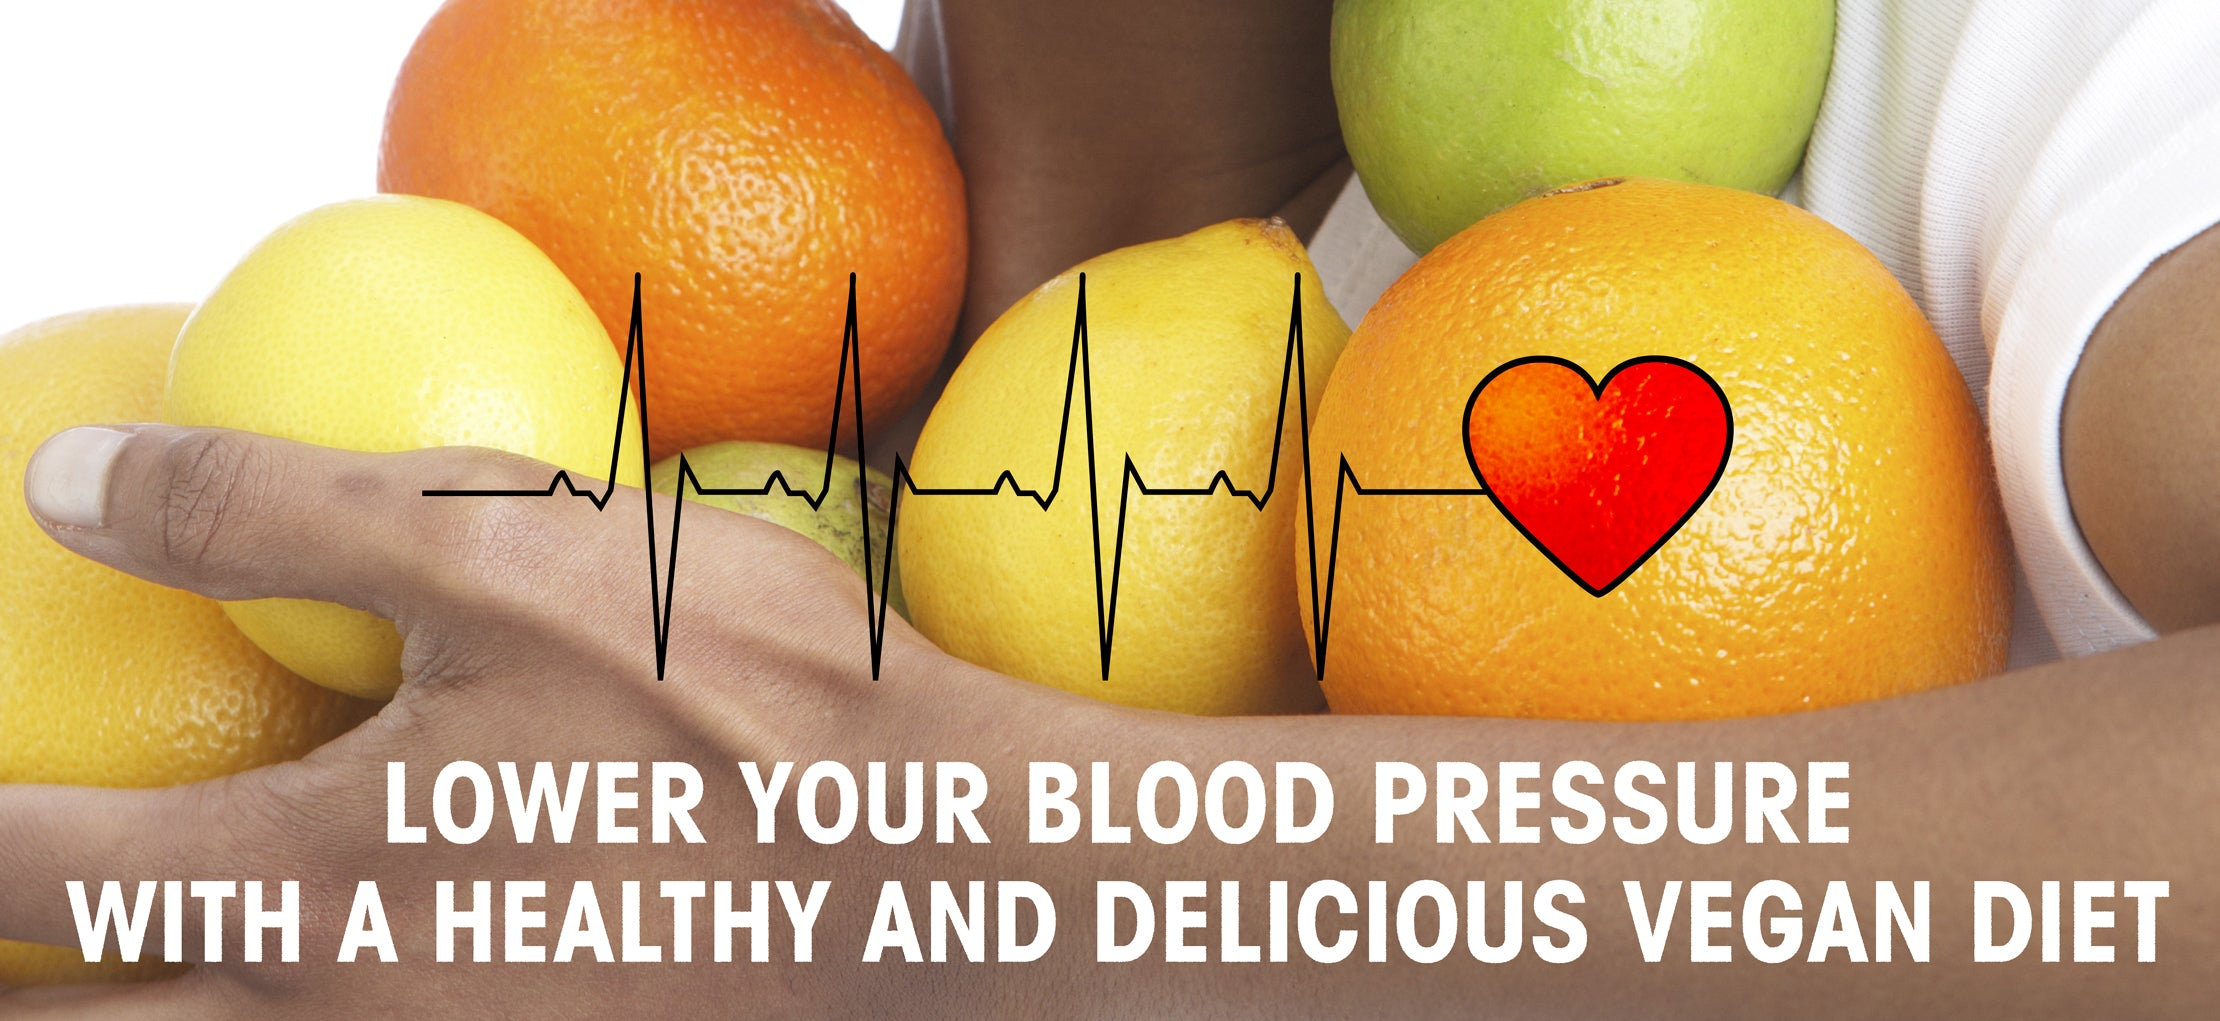 Lower your blood pressure with a healthy and delicious vegan diet